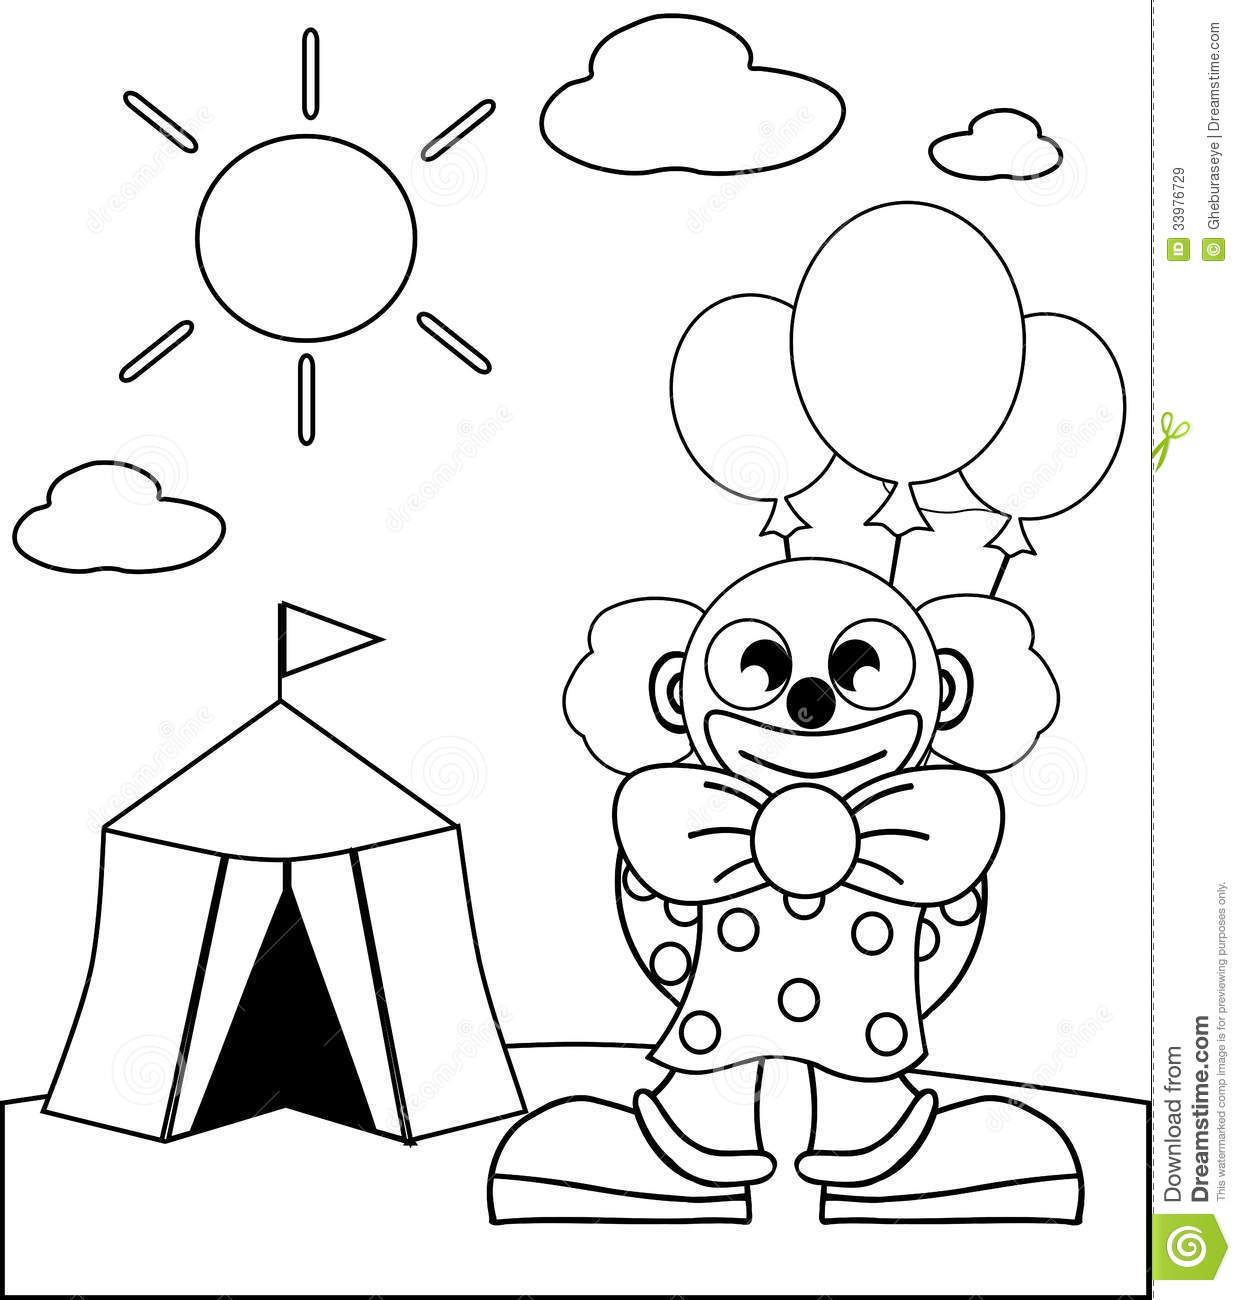 Coloring Clown With Balloons Royalty-Free Stock Photo